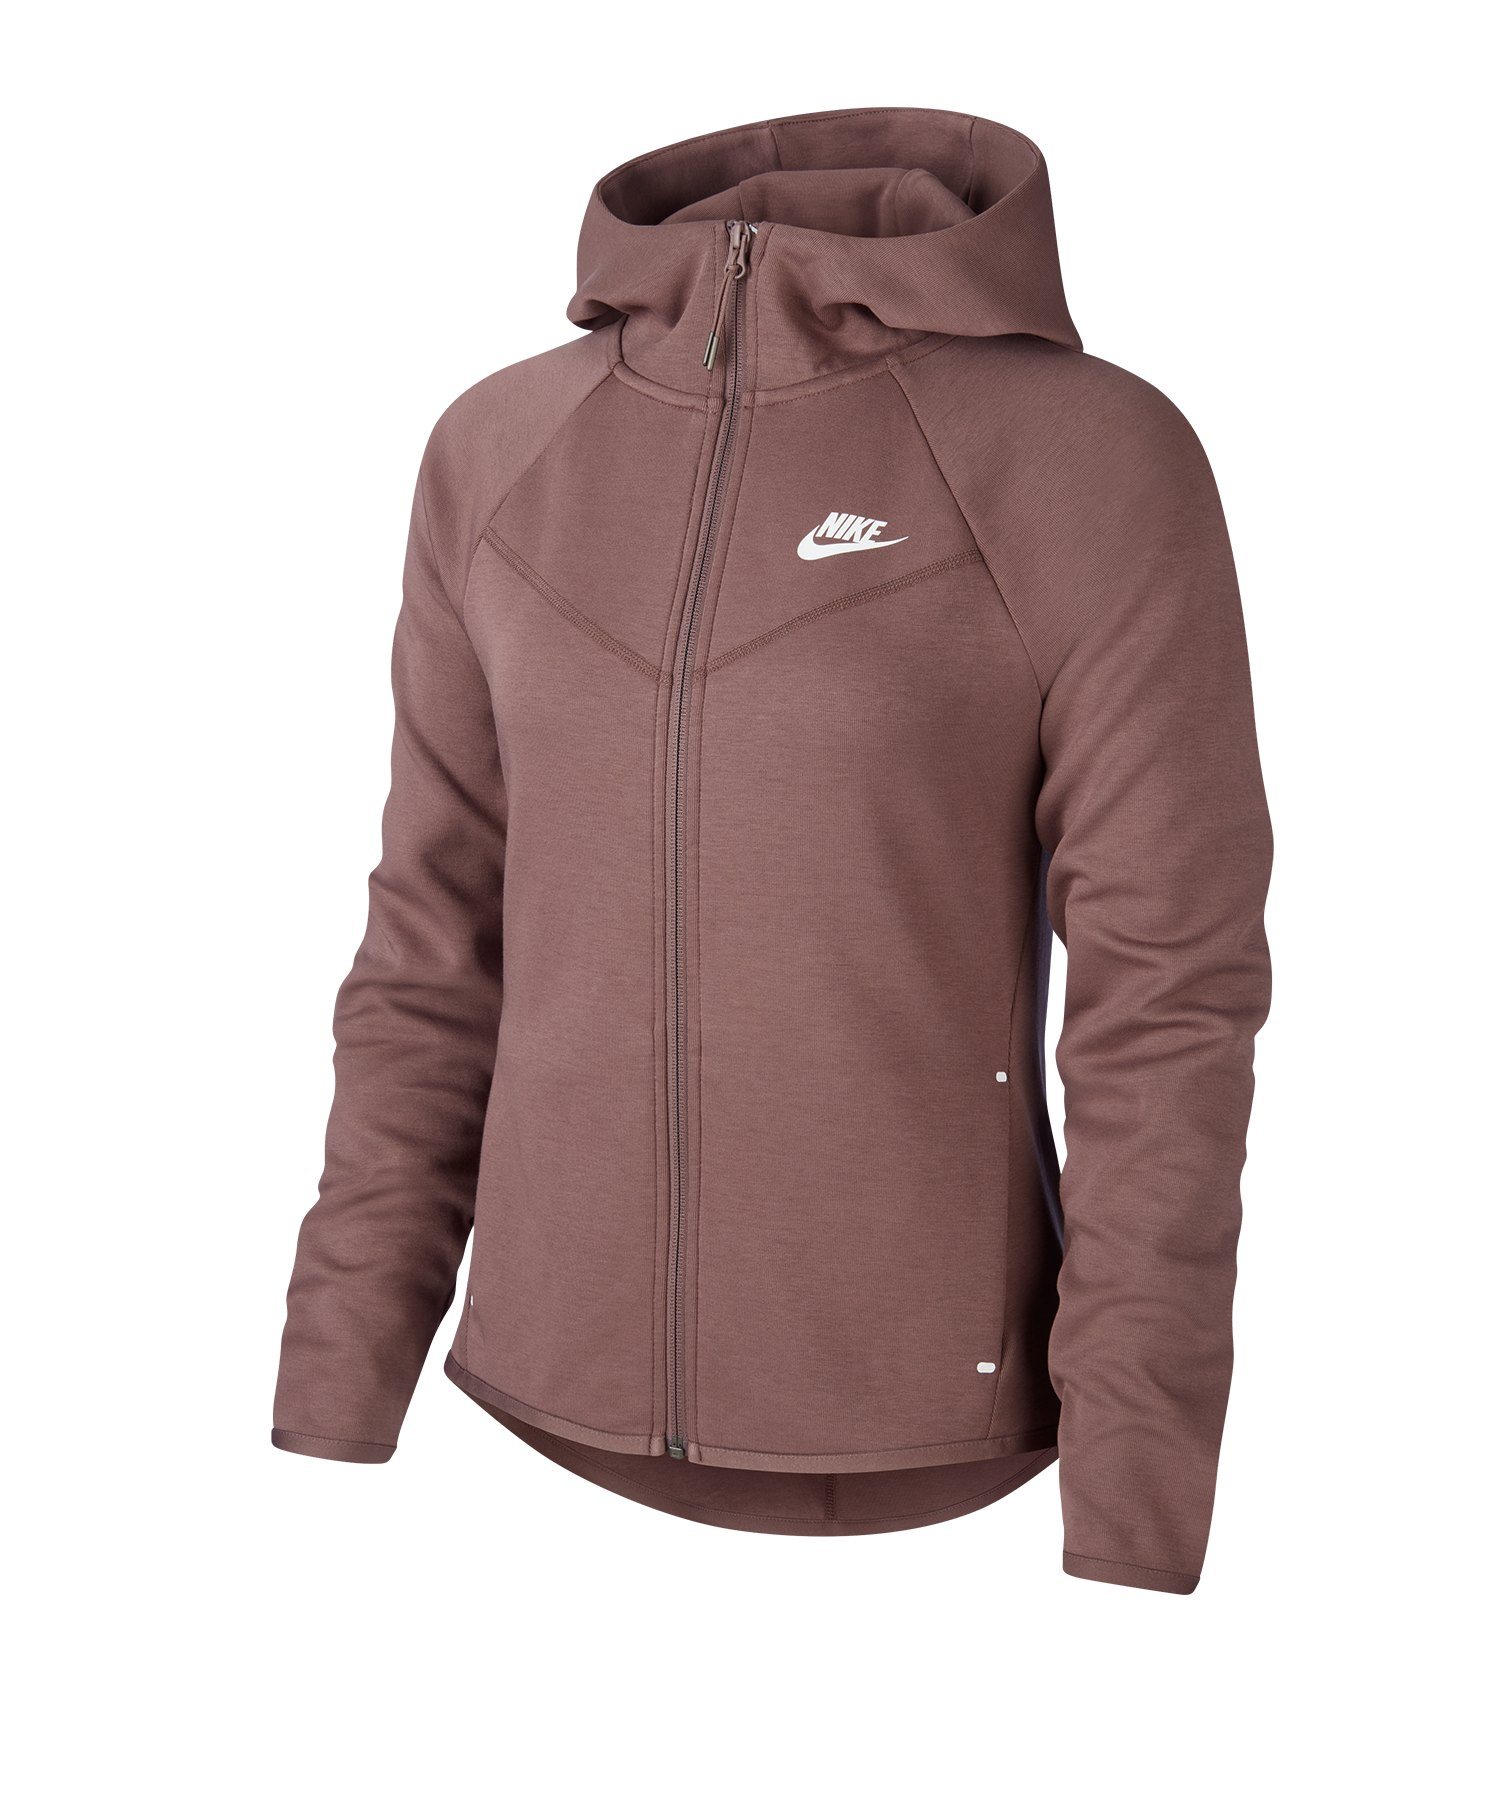 Nike Tech Fleece Windrunner Hoody Damen Braun F291 - braun